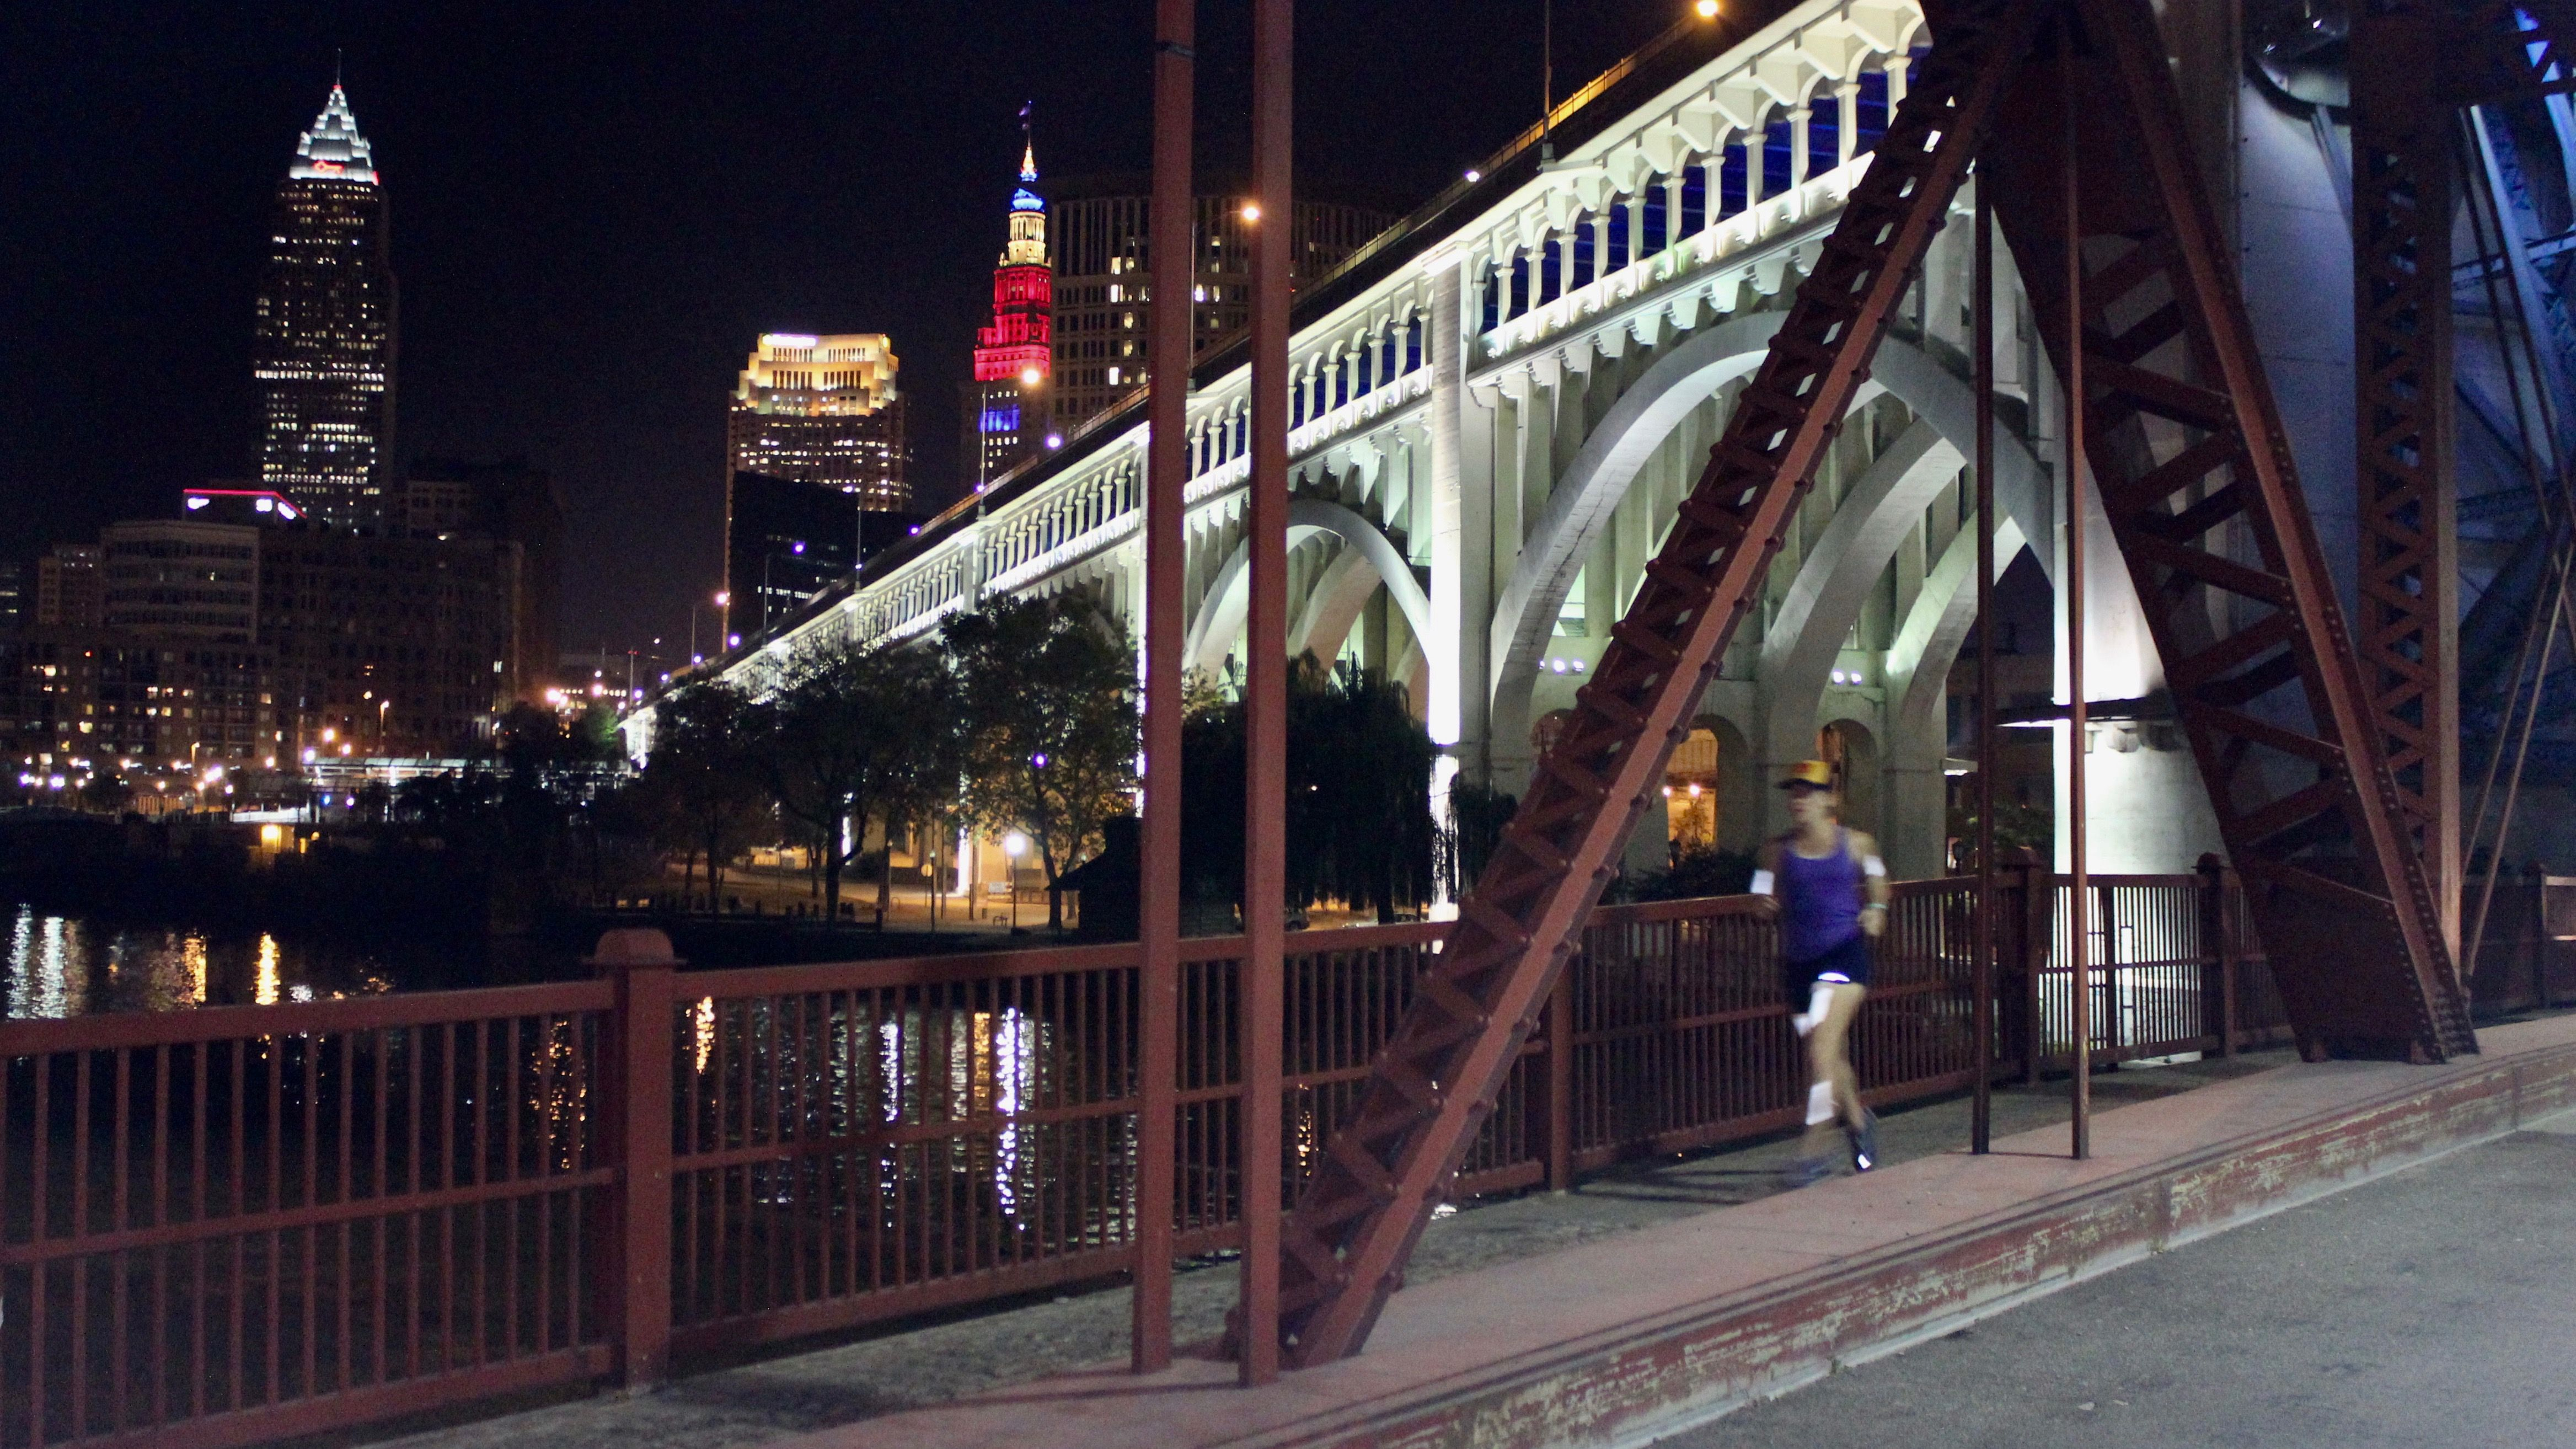 ab01d84608648 The best reflective running gear and accessories for running at night